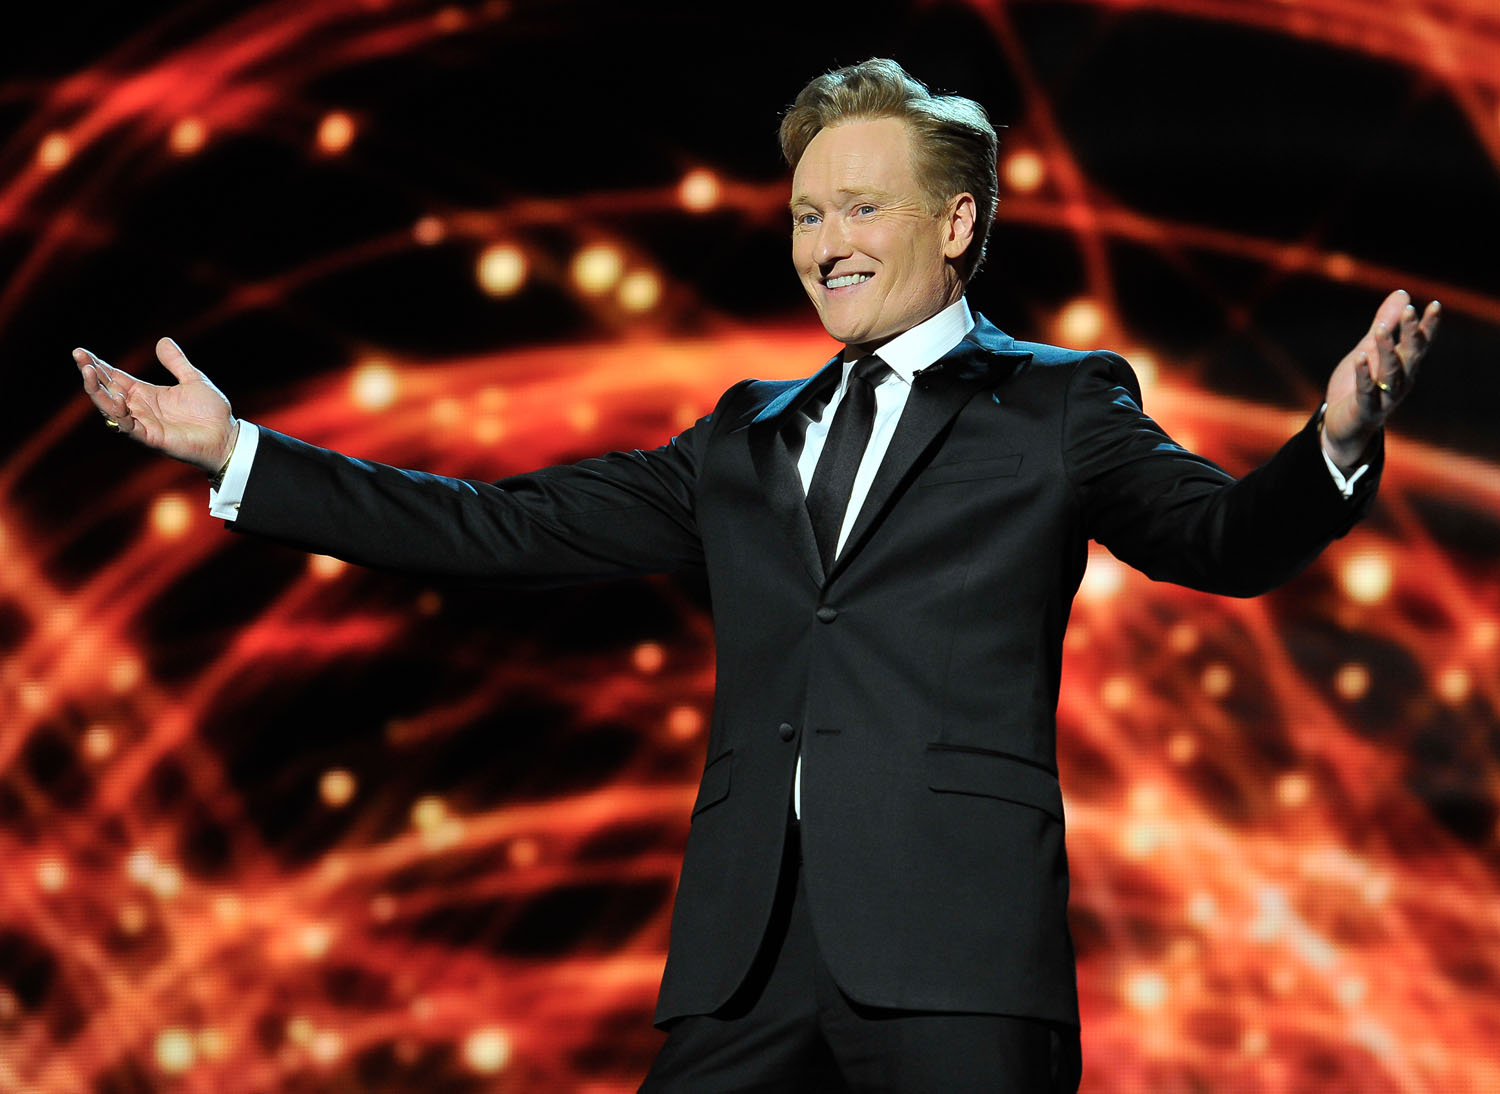 Conan O'Brien presents at the 2014 Breakthrough Prizes Awarded in Fundamental Physics and Life Sciences Ceremony at NASA Ames Research Center on December 12, 2013 in Mountain View, California.